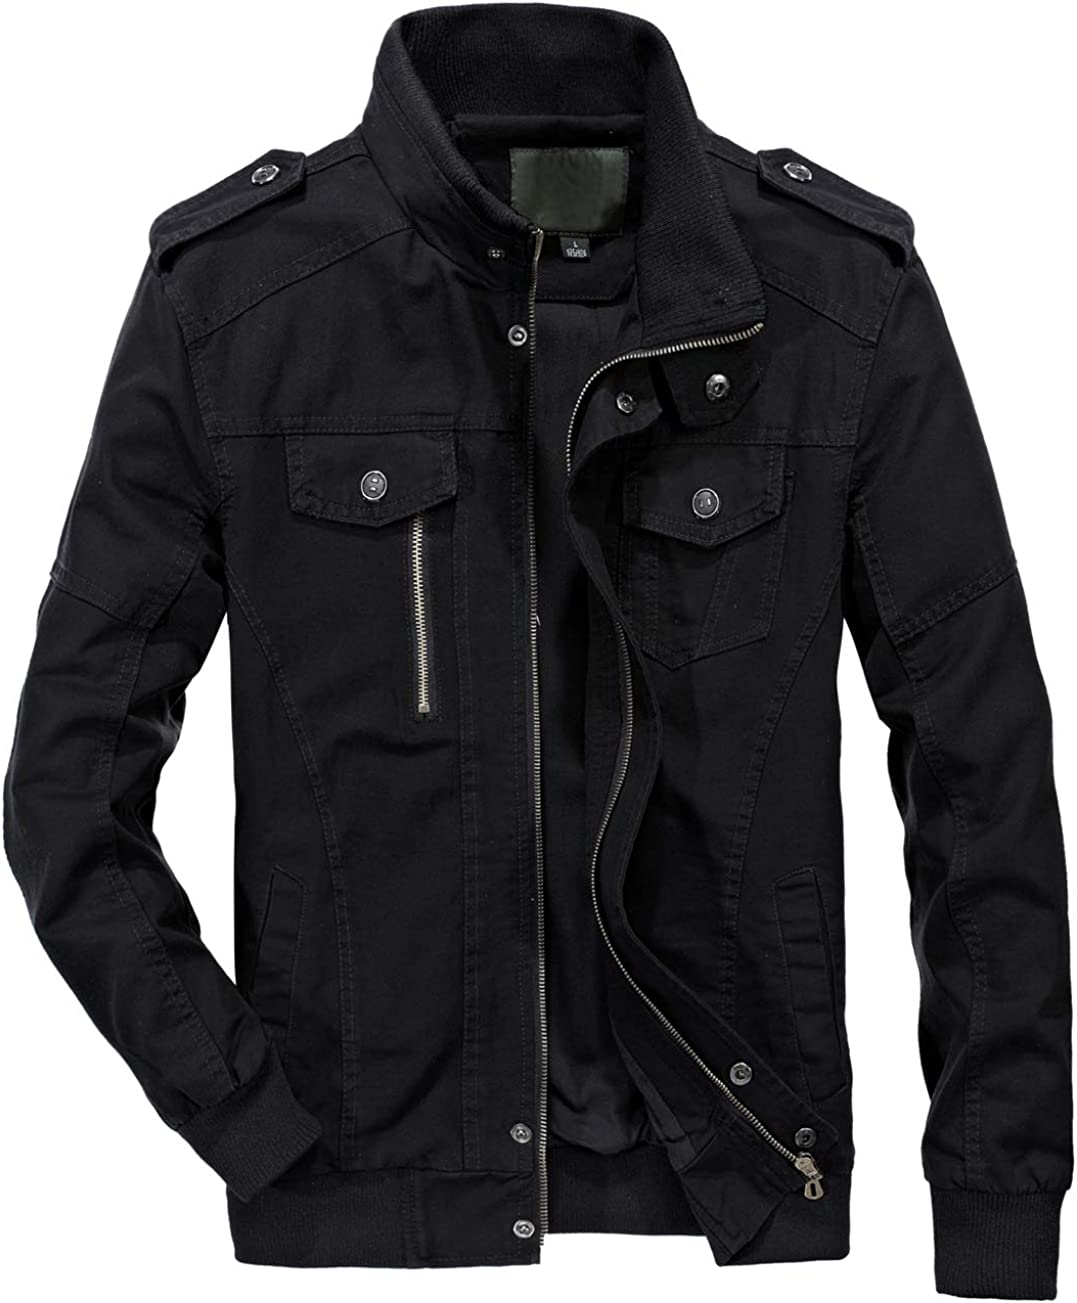 chouyatou Men's Essential Cotton Beauty products Bomber Super sale period limited Lightweight Jacket